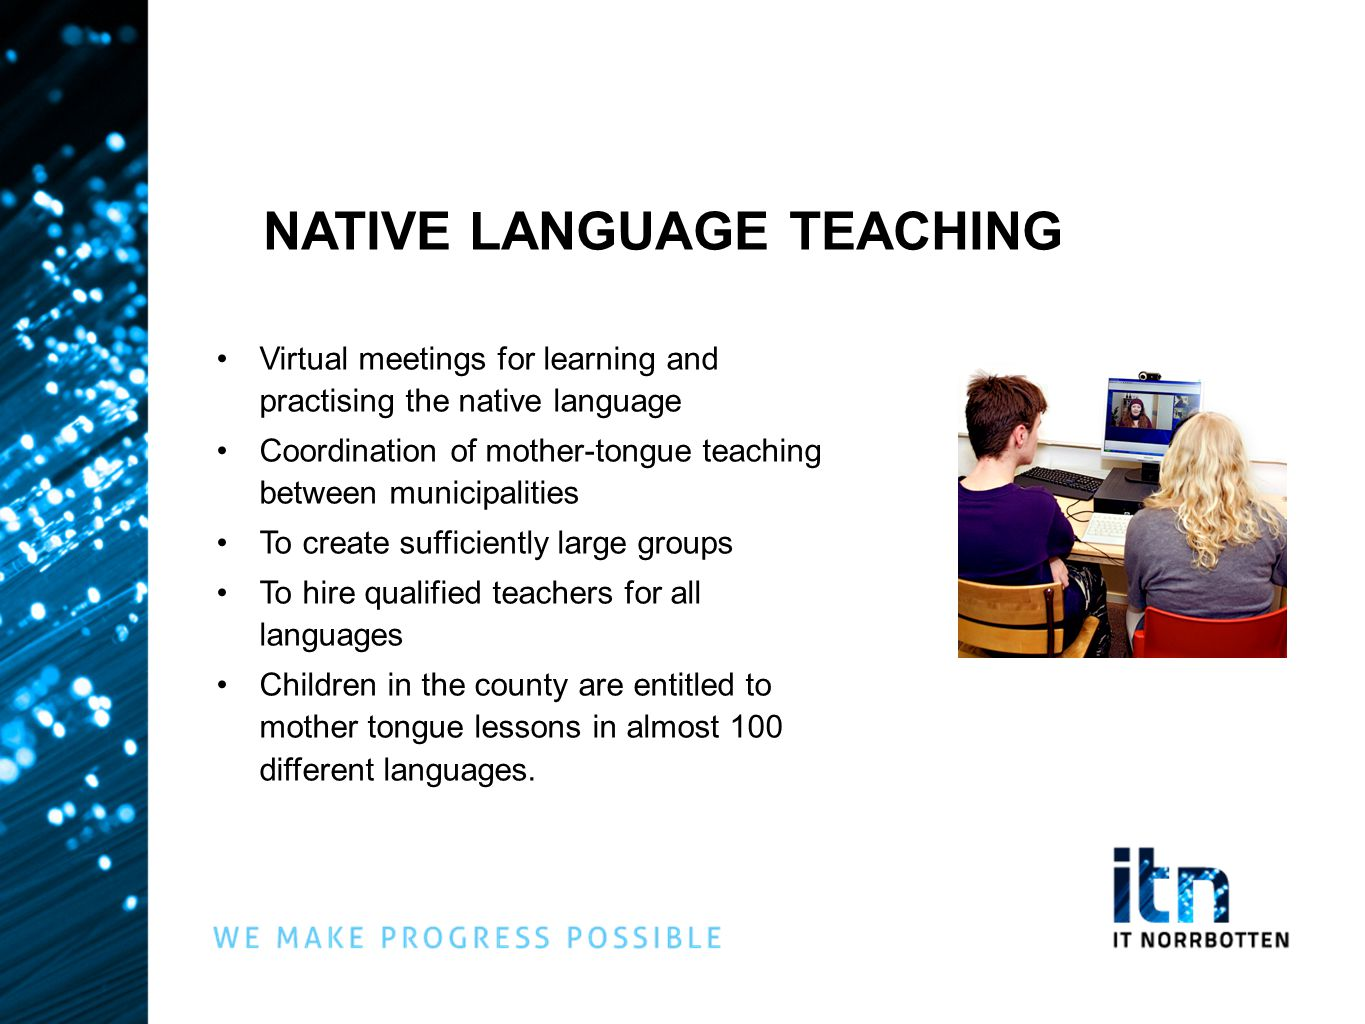 NATIVE LANGUAGE TEACHING •Virtual meetings for learning and practising the native language •Coordination of mother-tongue teaching between municipalities •To create sufficiently large groups •To hire qualified teachers for all languages •Children in the county are entitled to mother tongue lessons in almost 100 different languages.